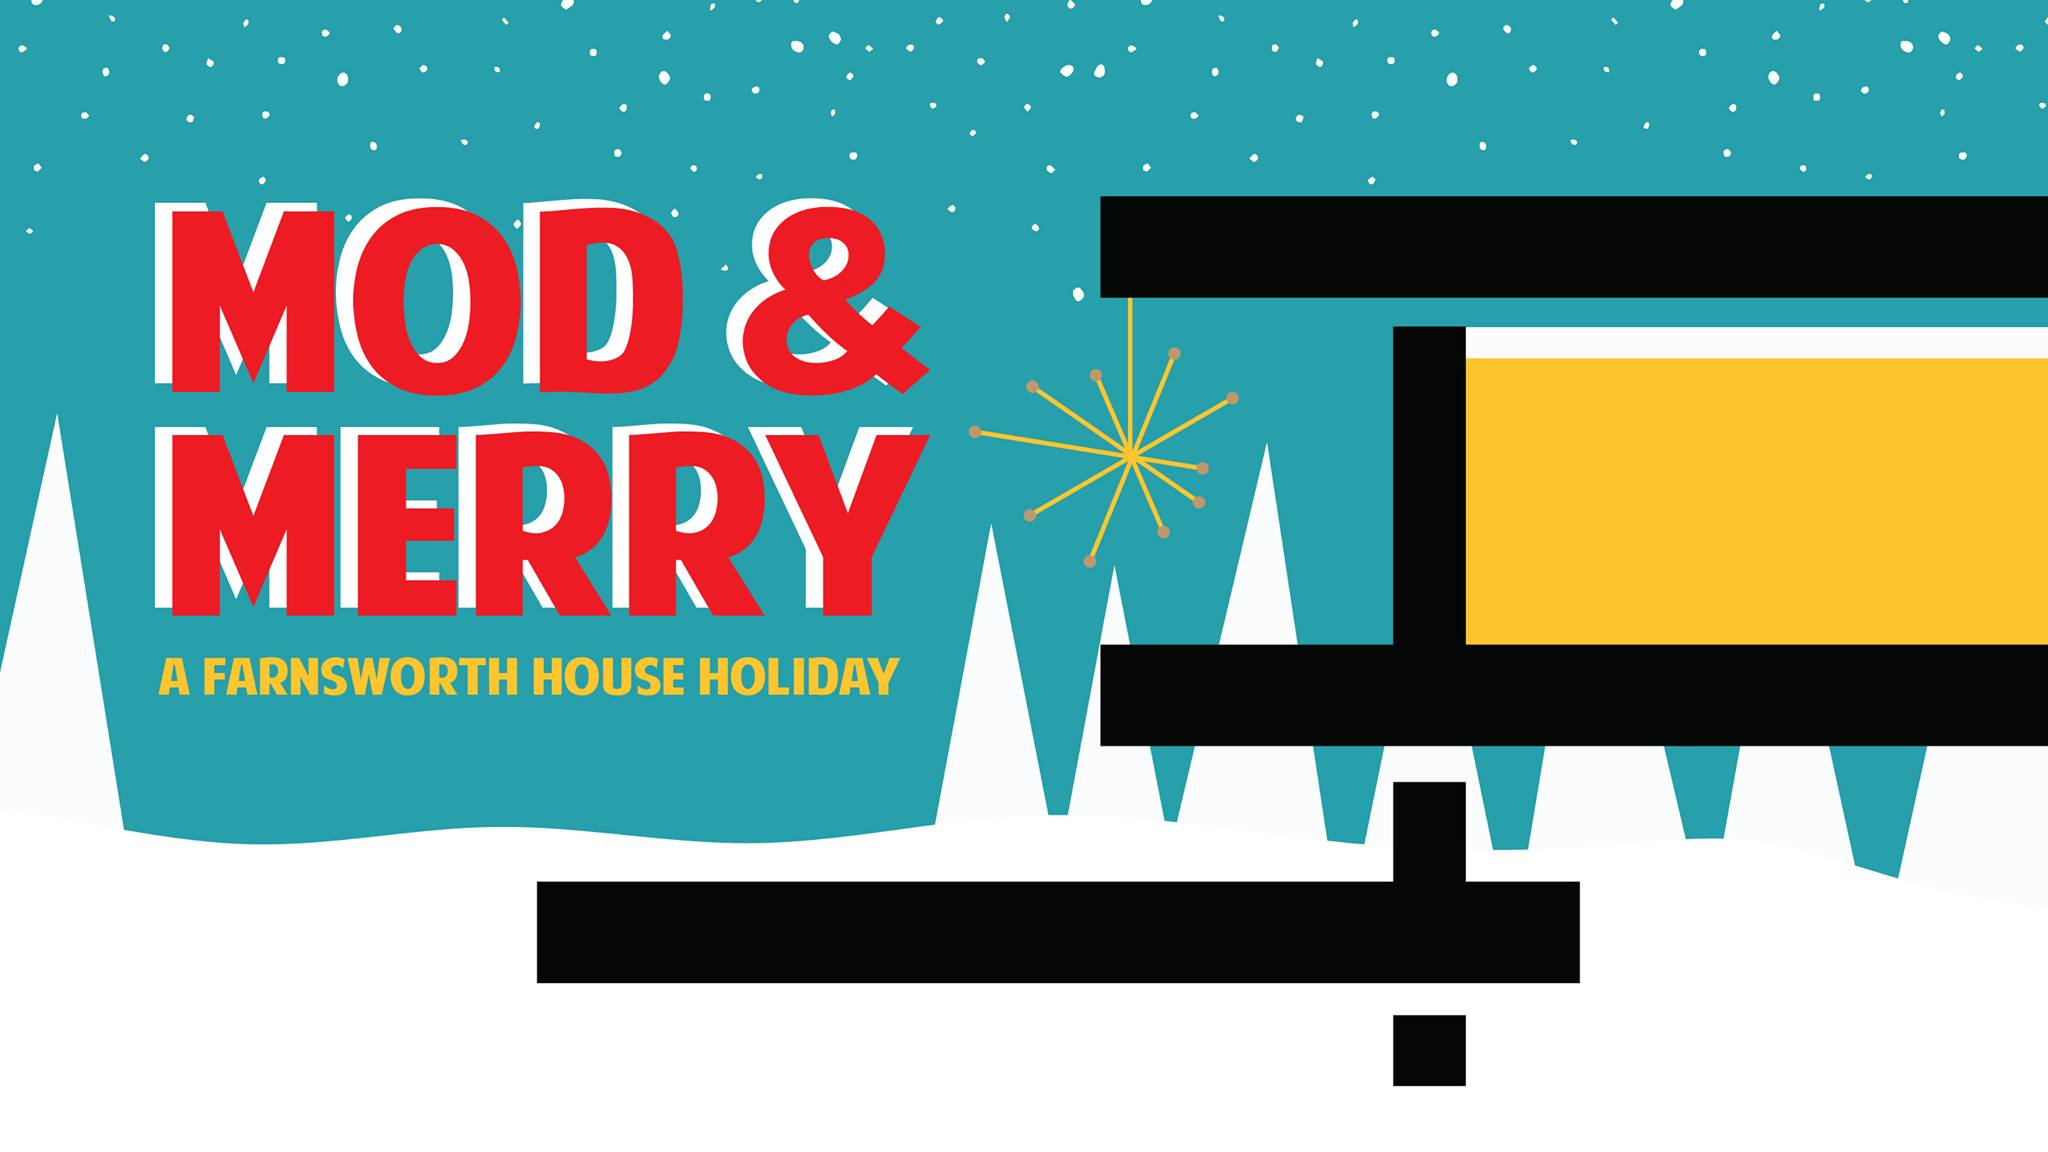 Mod & Merry: A Farnsworth House Holiday